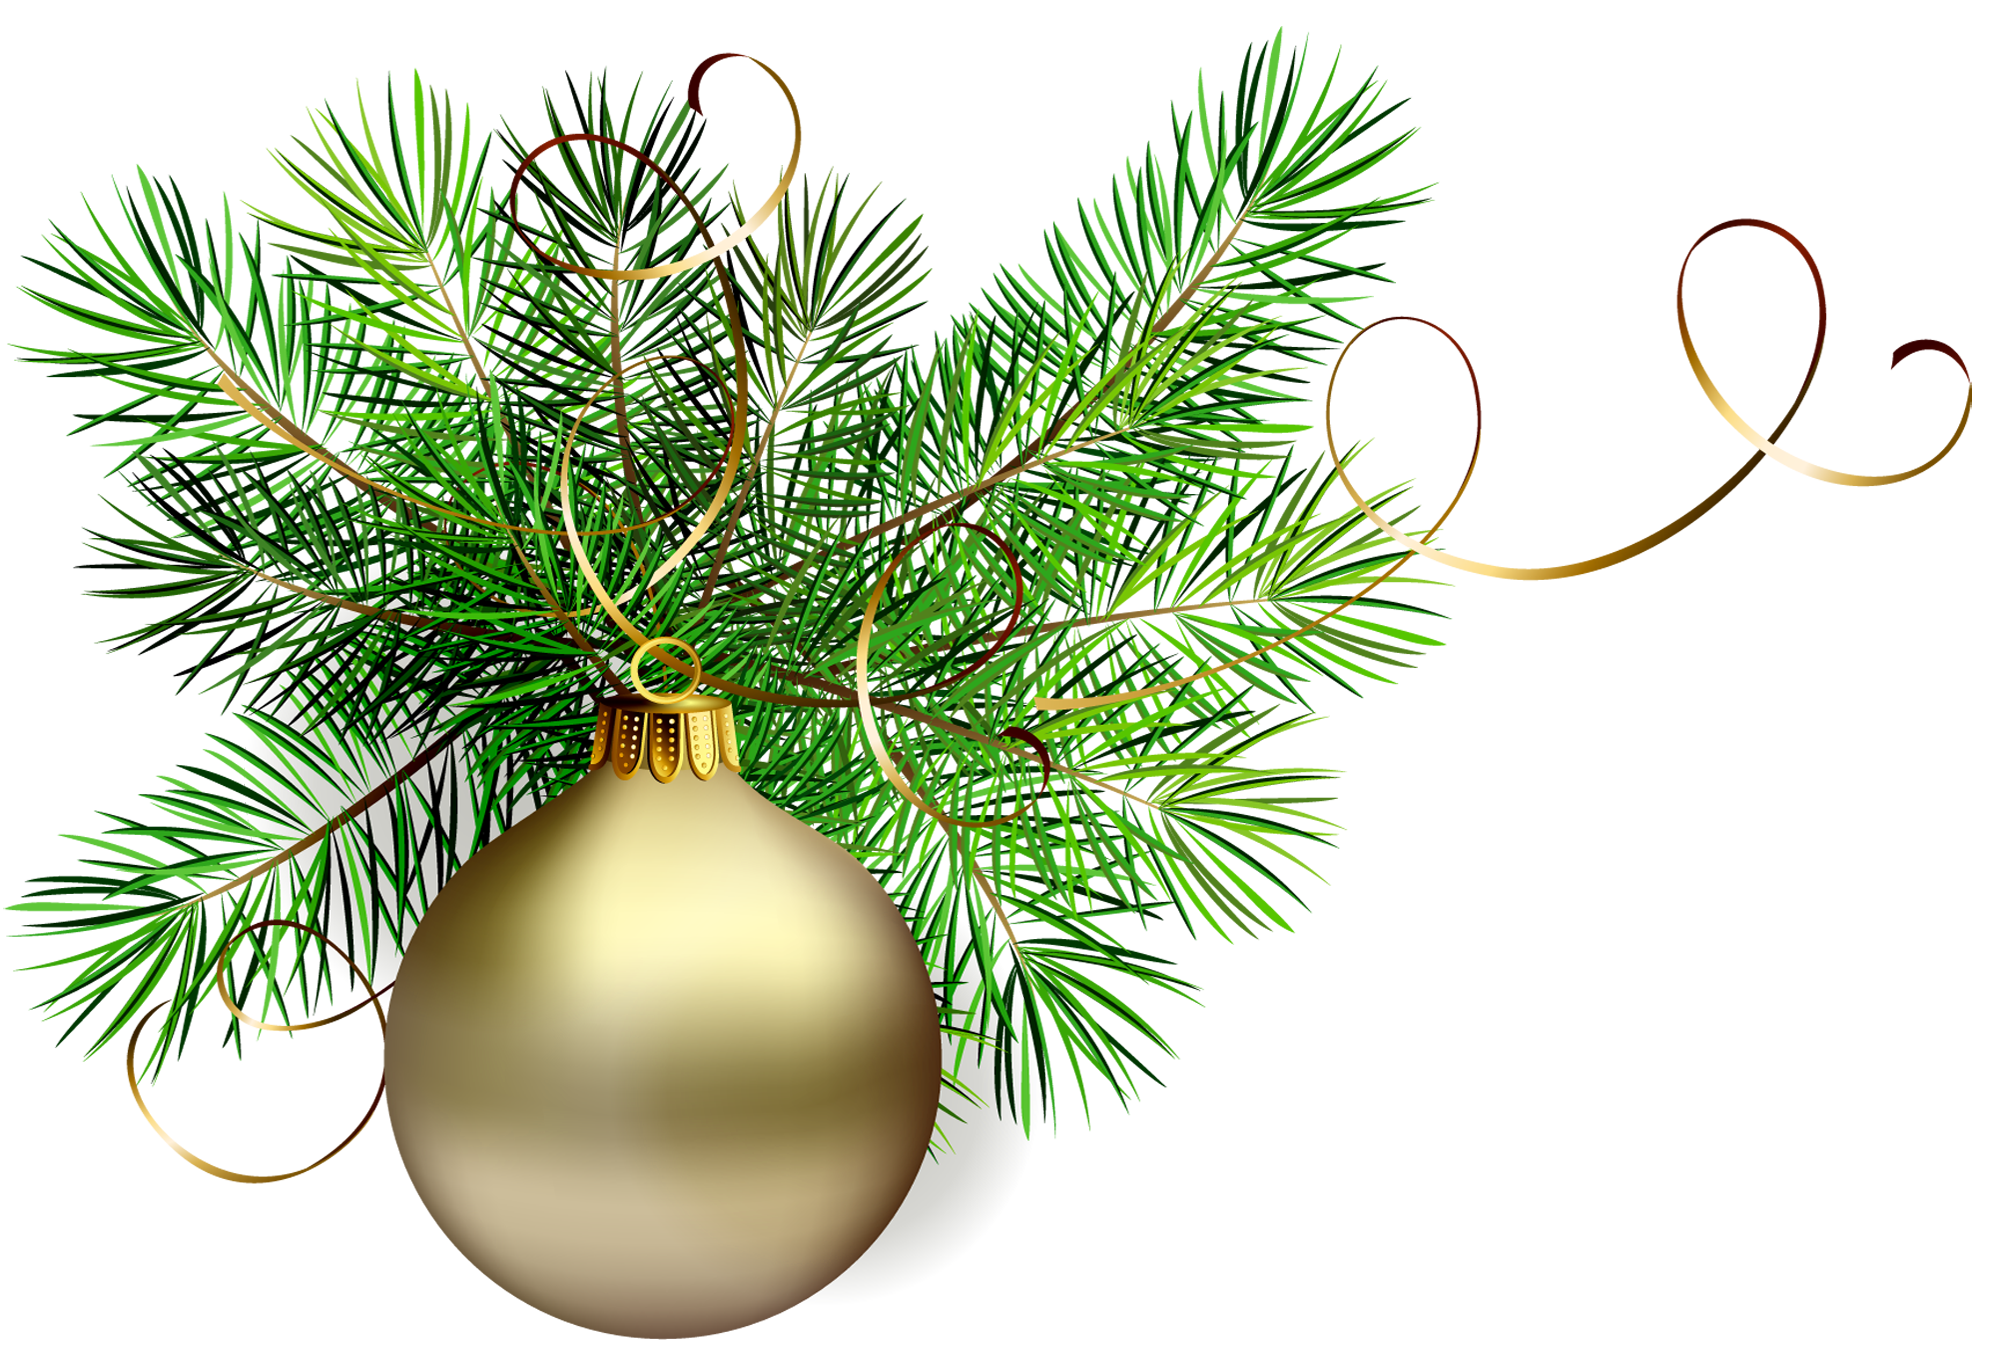 Transparent gold christmas ball. Ivy clipart bough